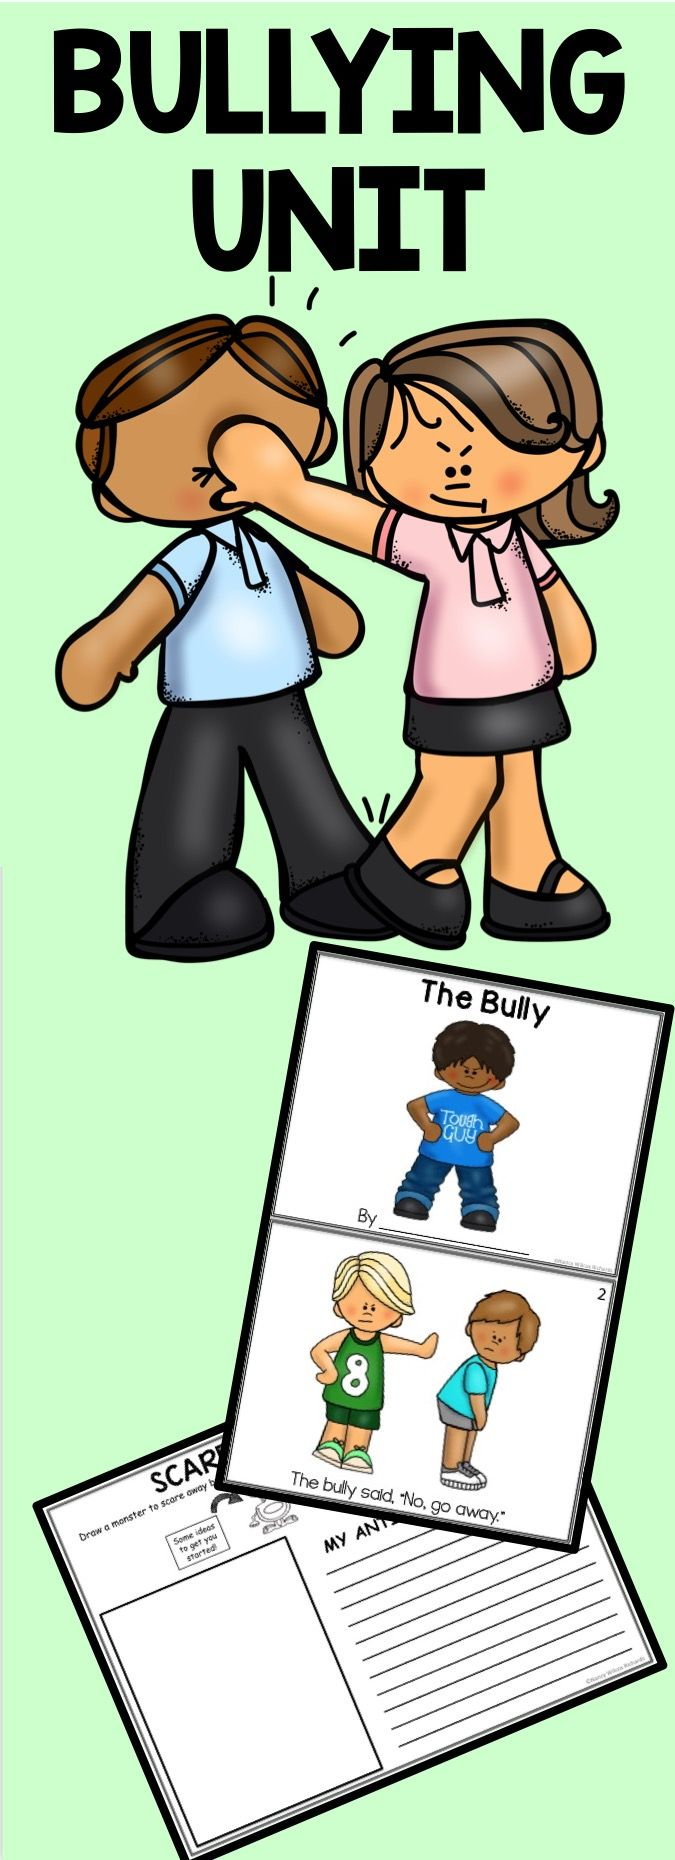 Anti-Bullying activities (writing, reading, art and more!) for K-3. Home-school too!